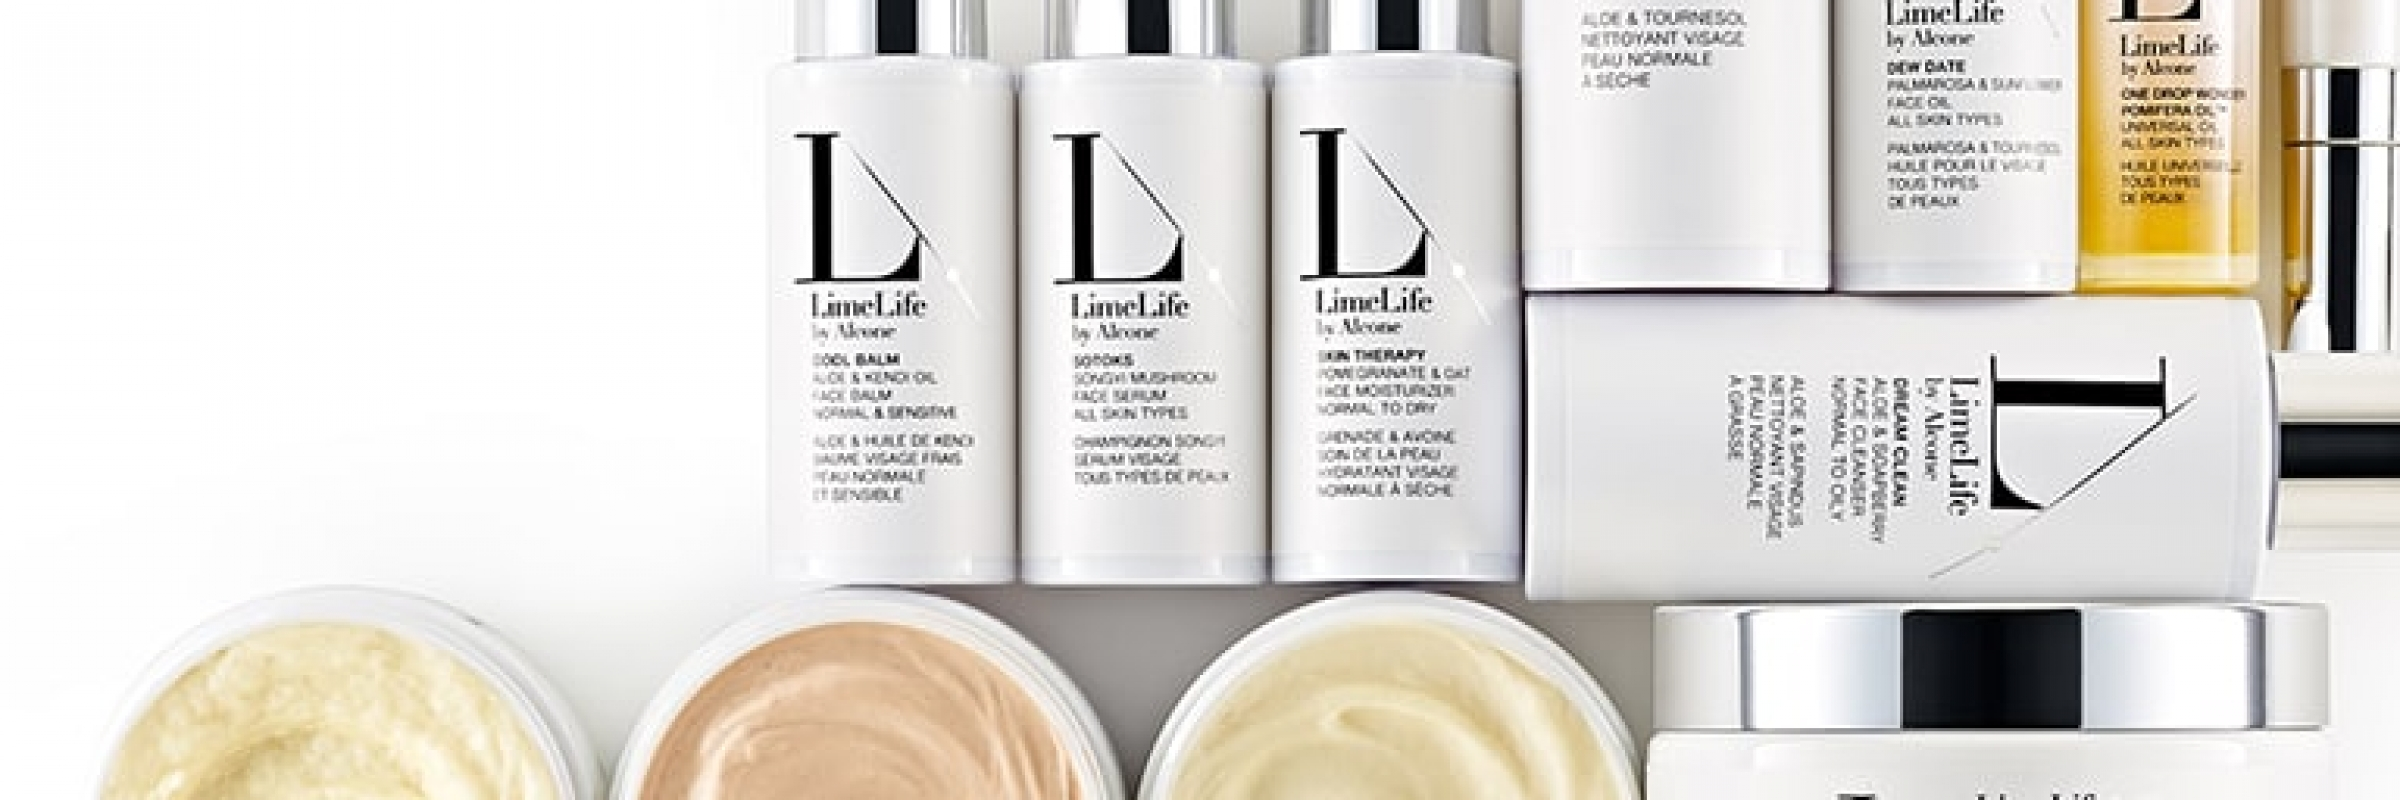 LimeLife by Alcone Skincare, Jean Lucas, Brazen Faith LLC, Independent Beauty Guide, Anchorage, Alaska